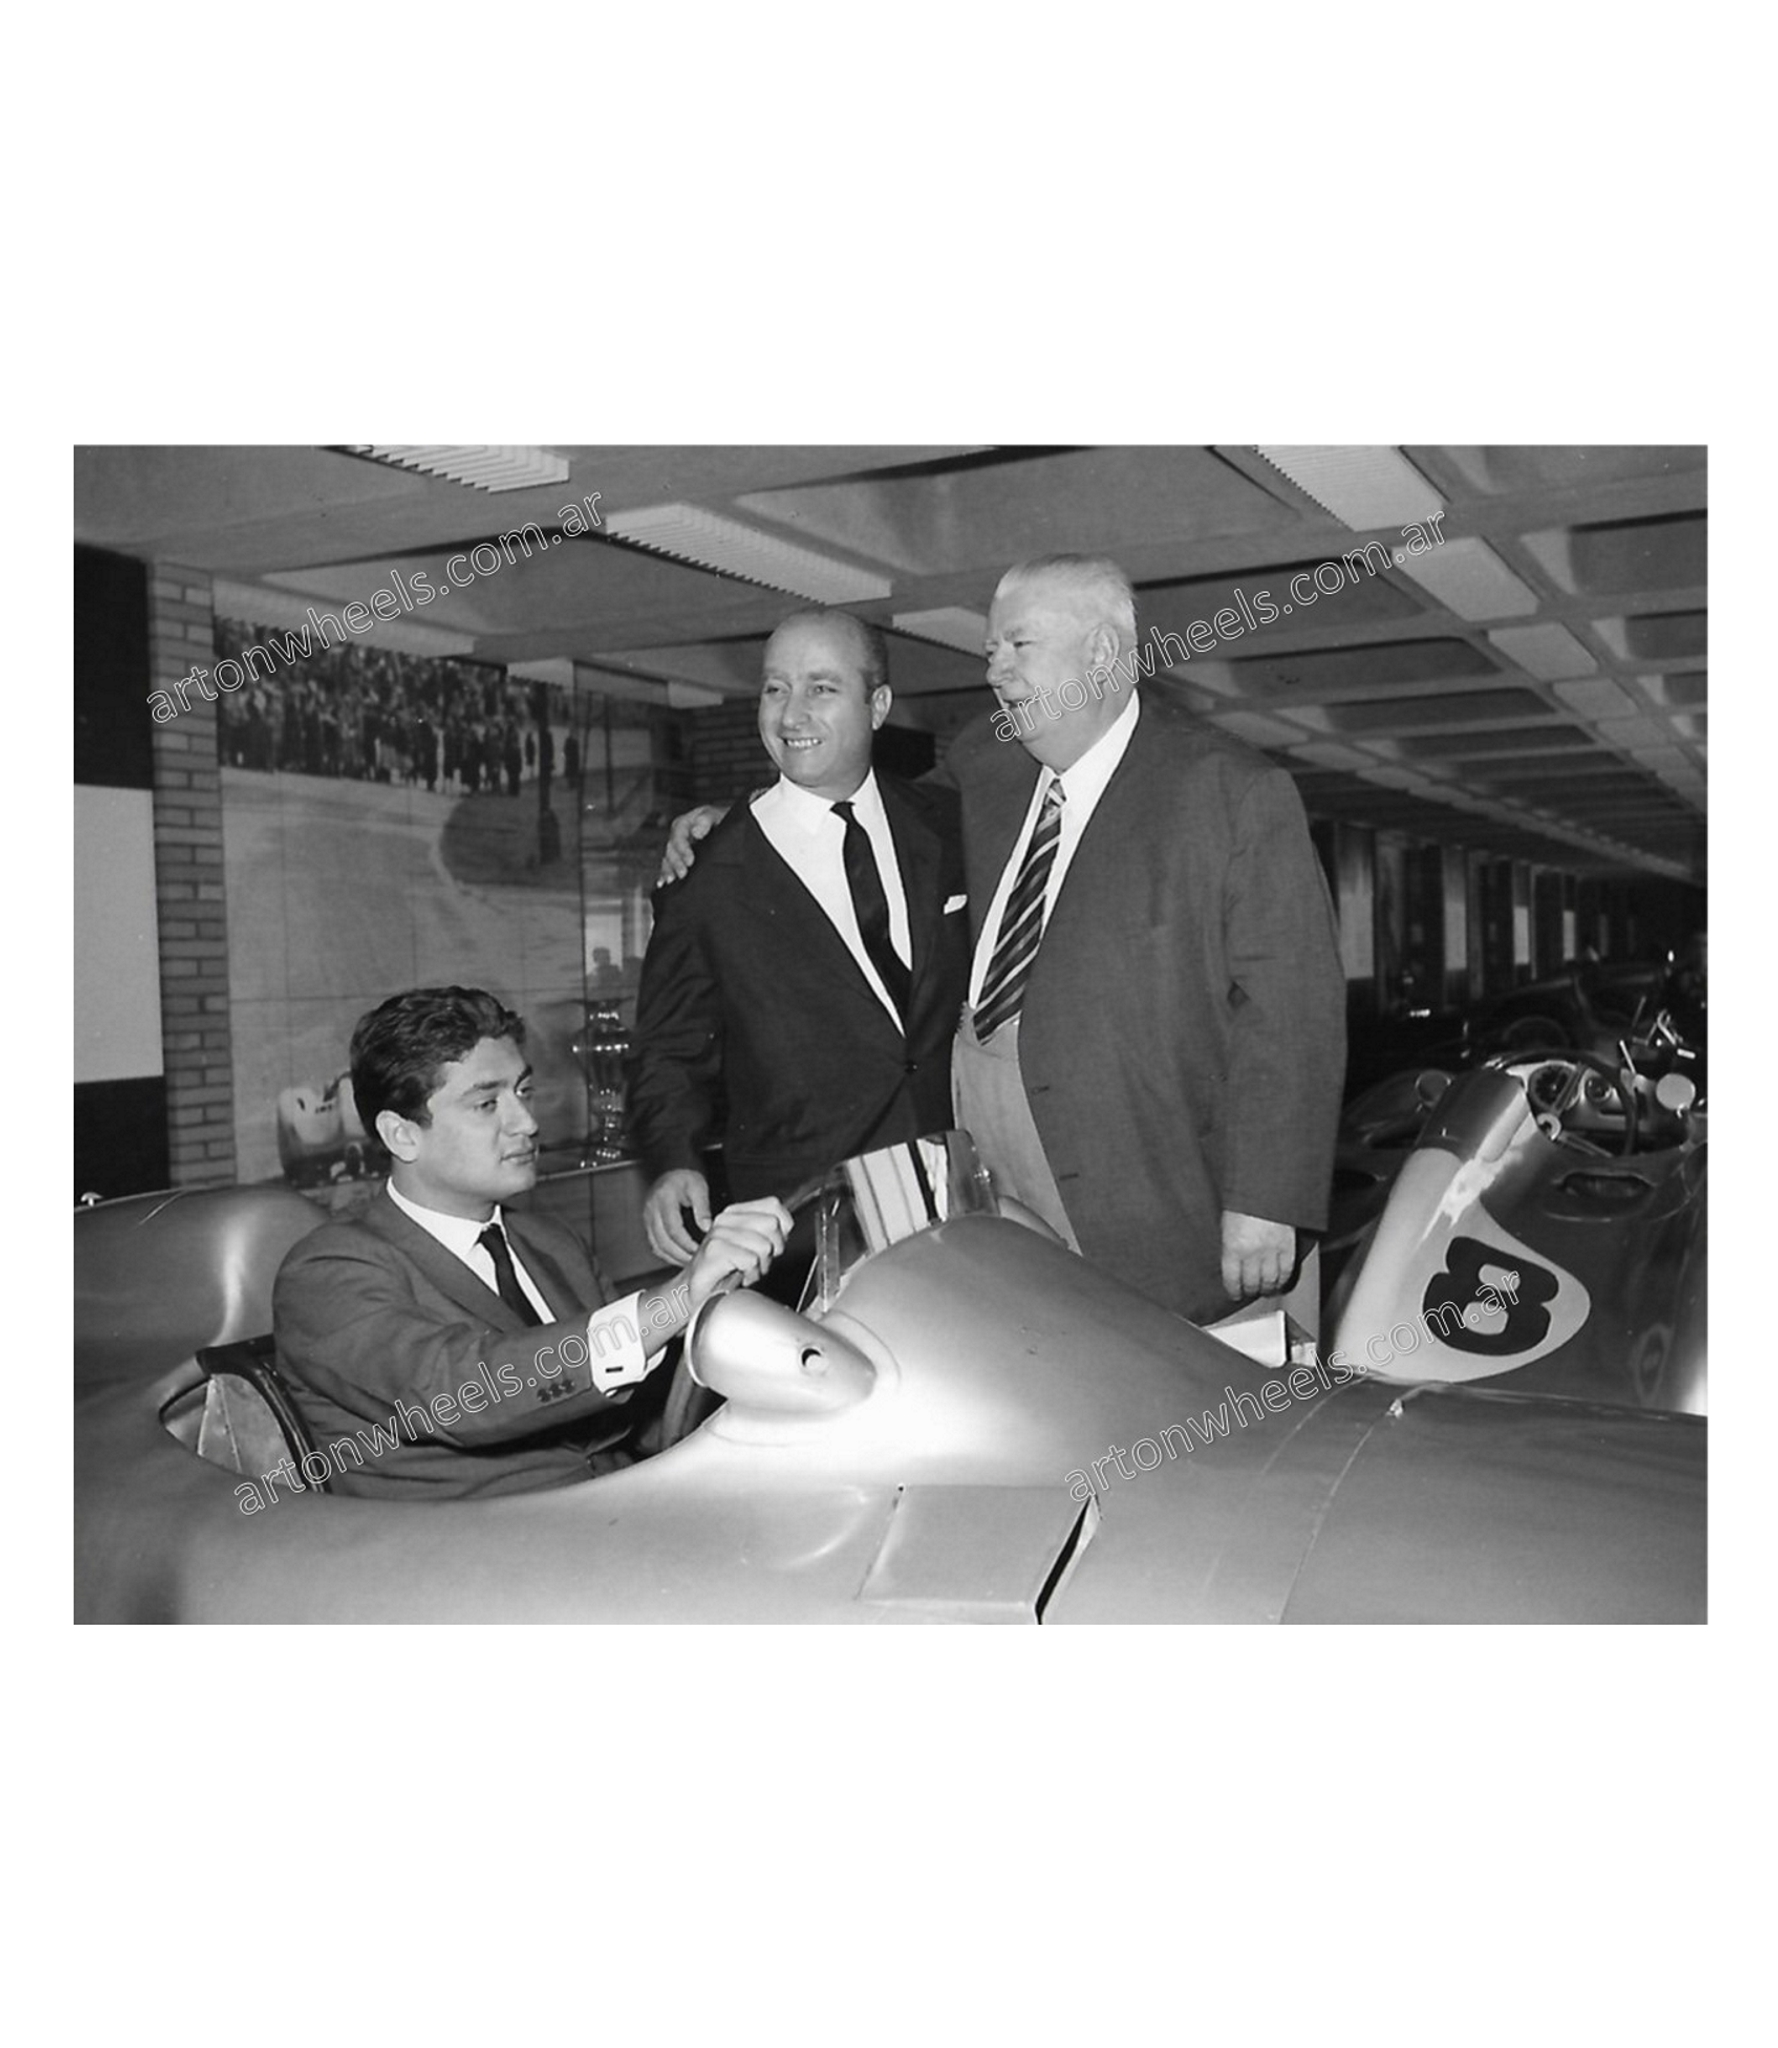 Fangio, Neubauer and Bordeu photo with the Mercedes w196